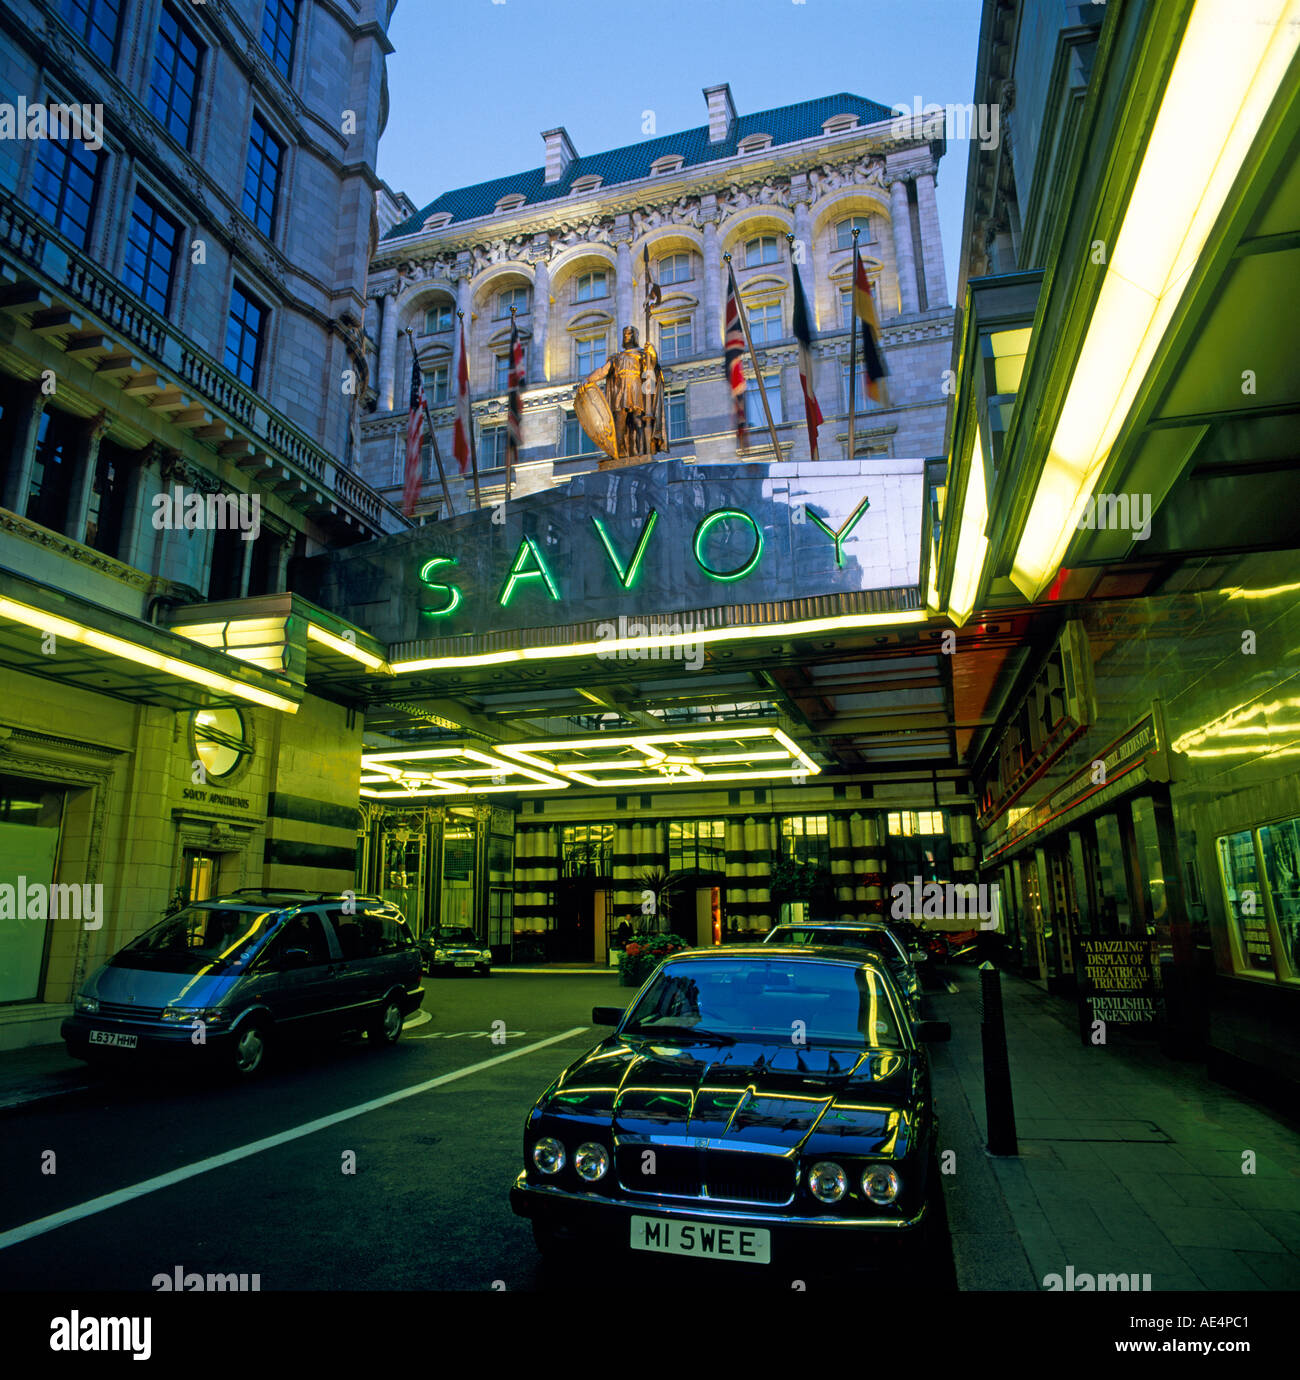 Savoy Hotel private driveway and entrance at dusk in 1990s - Stock Image